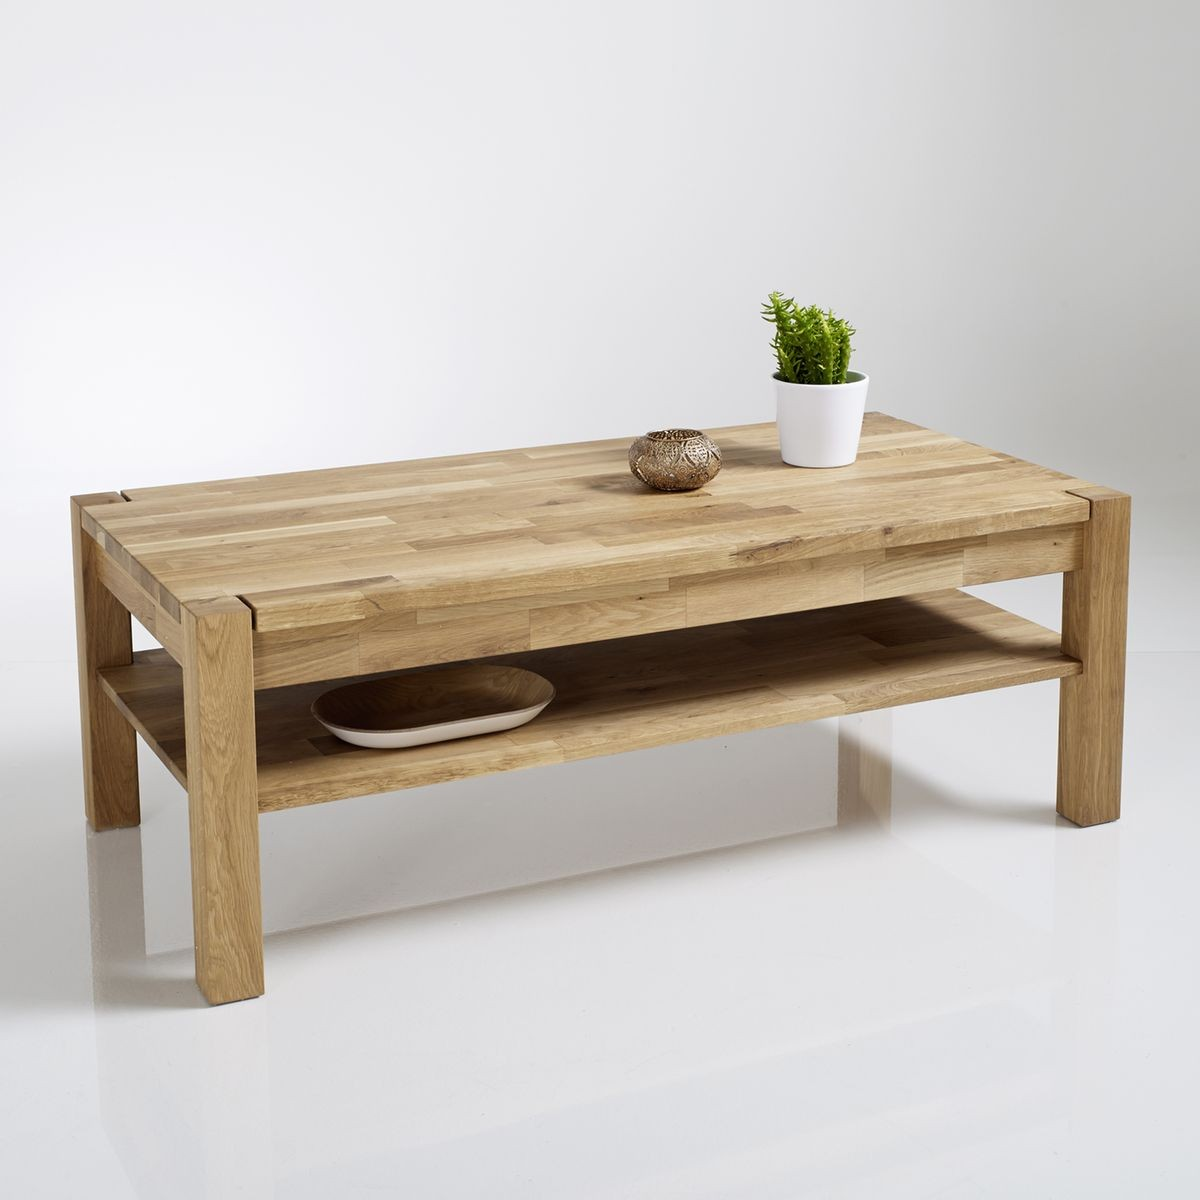 Table basse ch ne huil adelita la redoute interieurs for Table basse scandinave la redoute